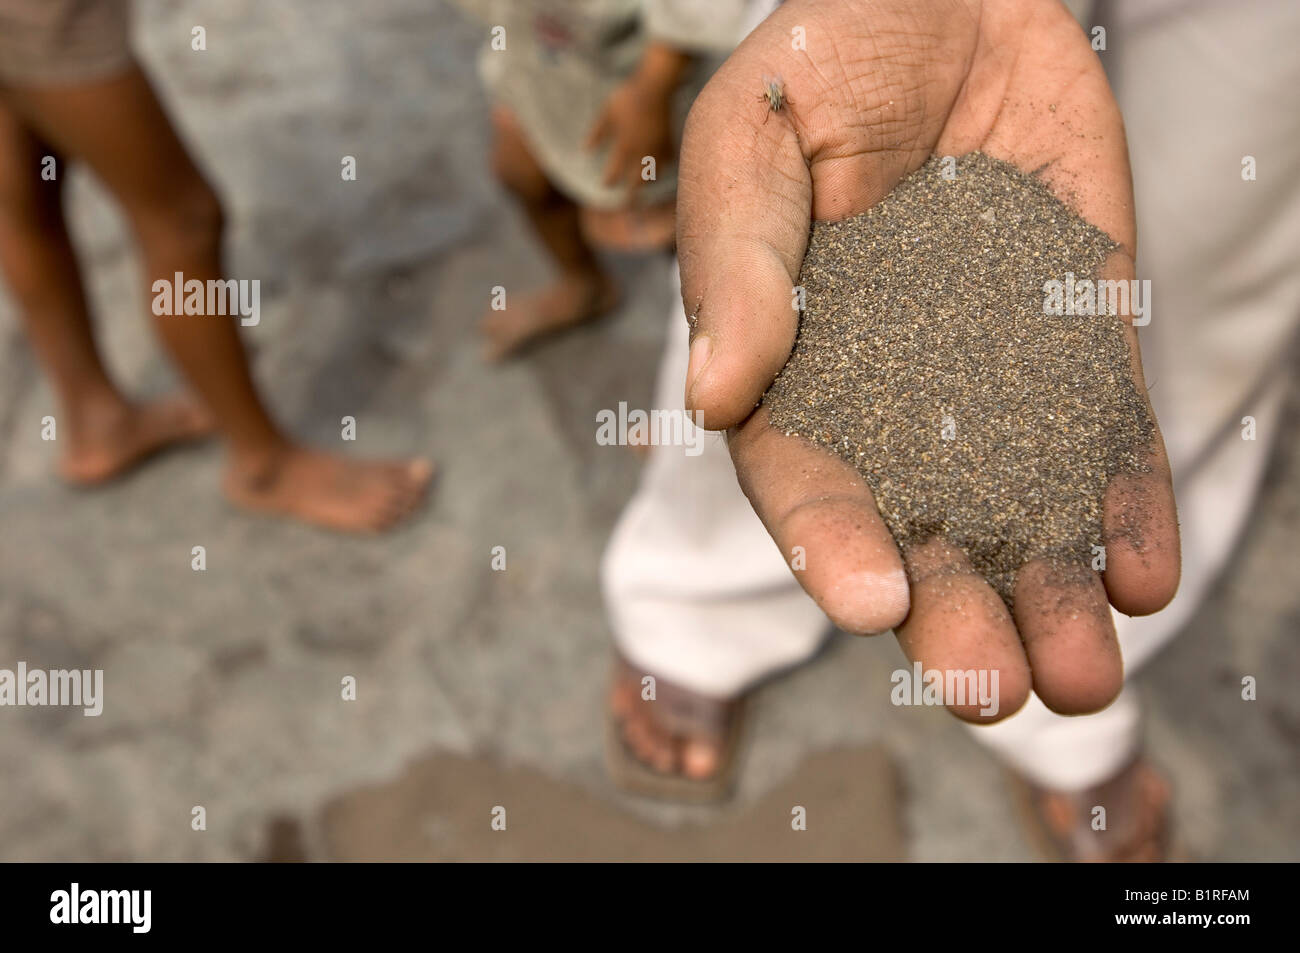 Copper shavings washed by hand from toxic industrial slag, earning a living from recycling waste in the slums of - Stock Image